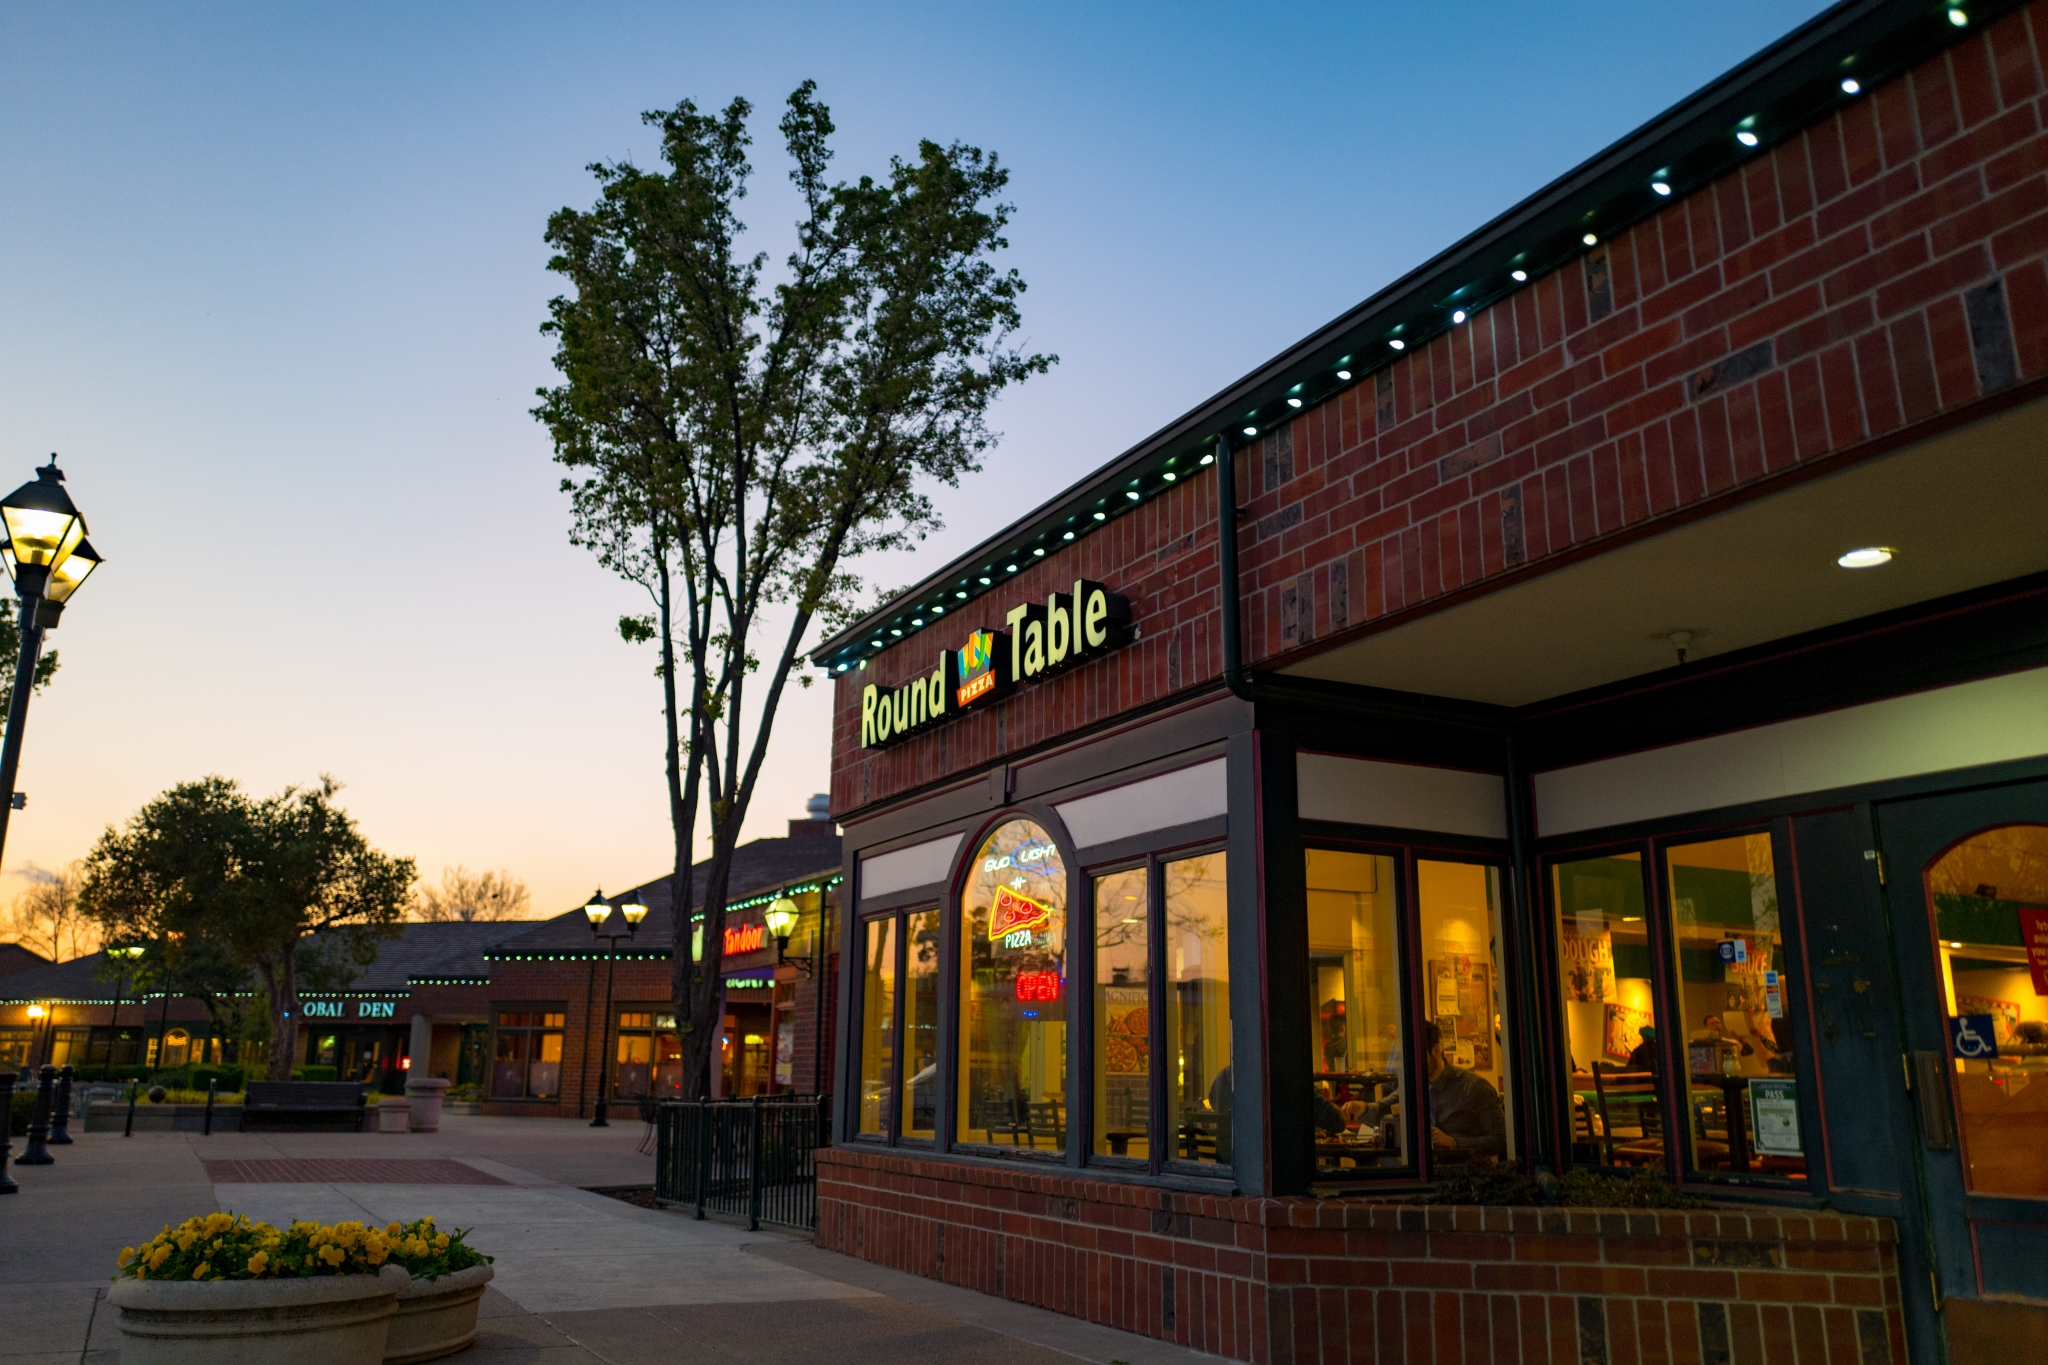 Bay Area s Round Table Pizza chain acquired by franchise group